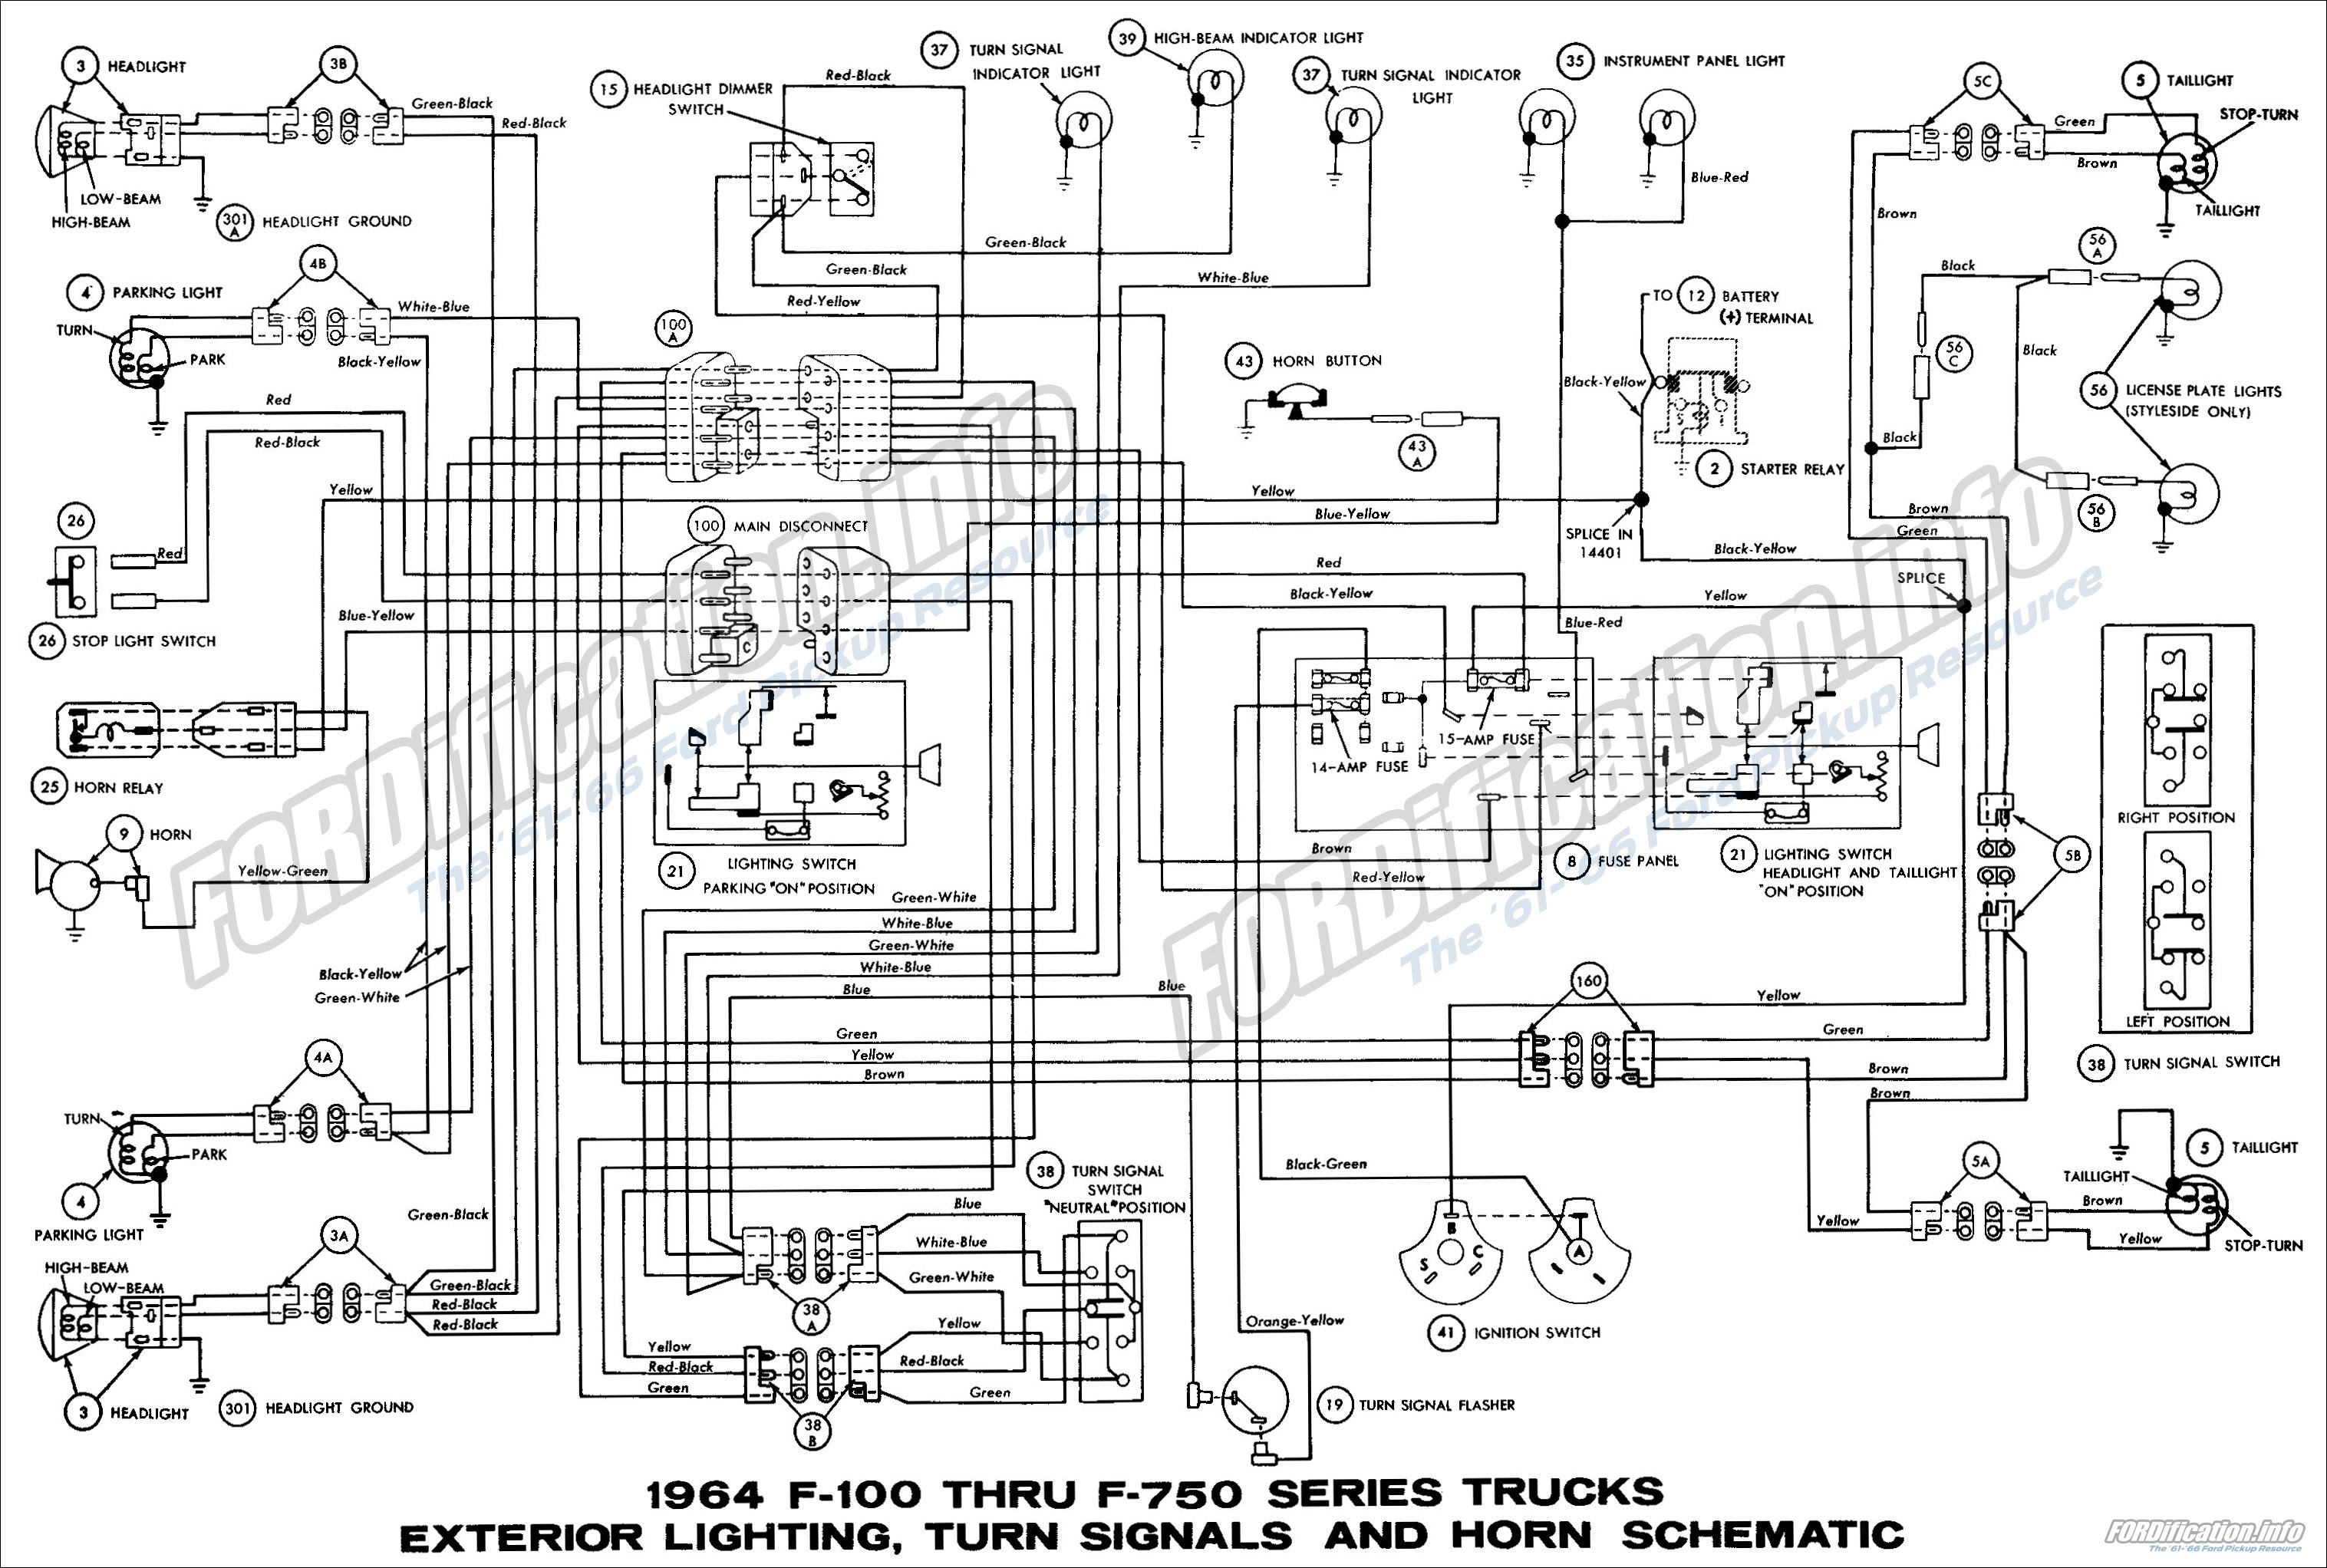 Diagram 1987 Ford Truck Wiring Diagram Full Version Hd Quality Wiring Diagram Diagramvn18 Japanfest It